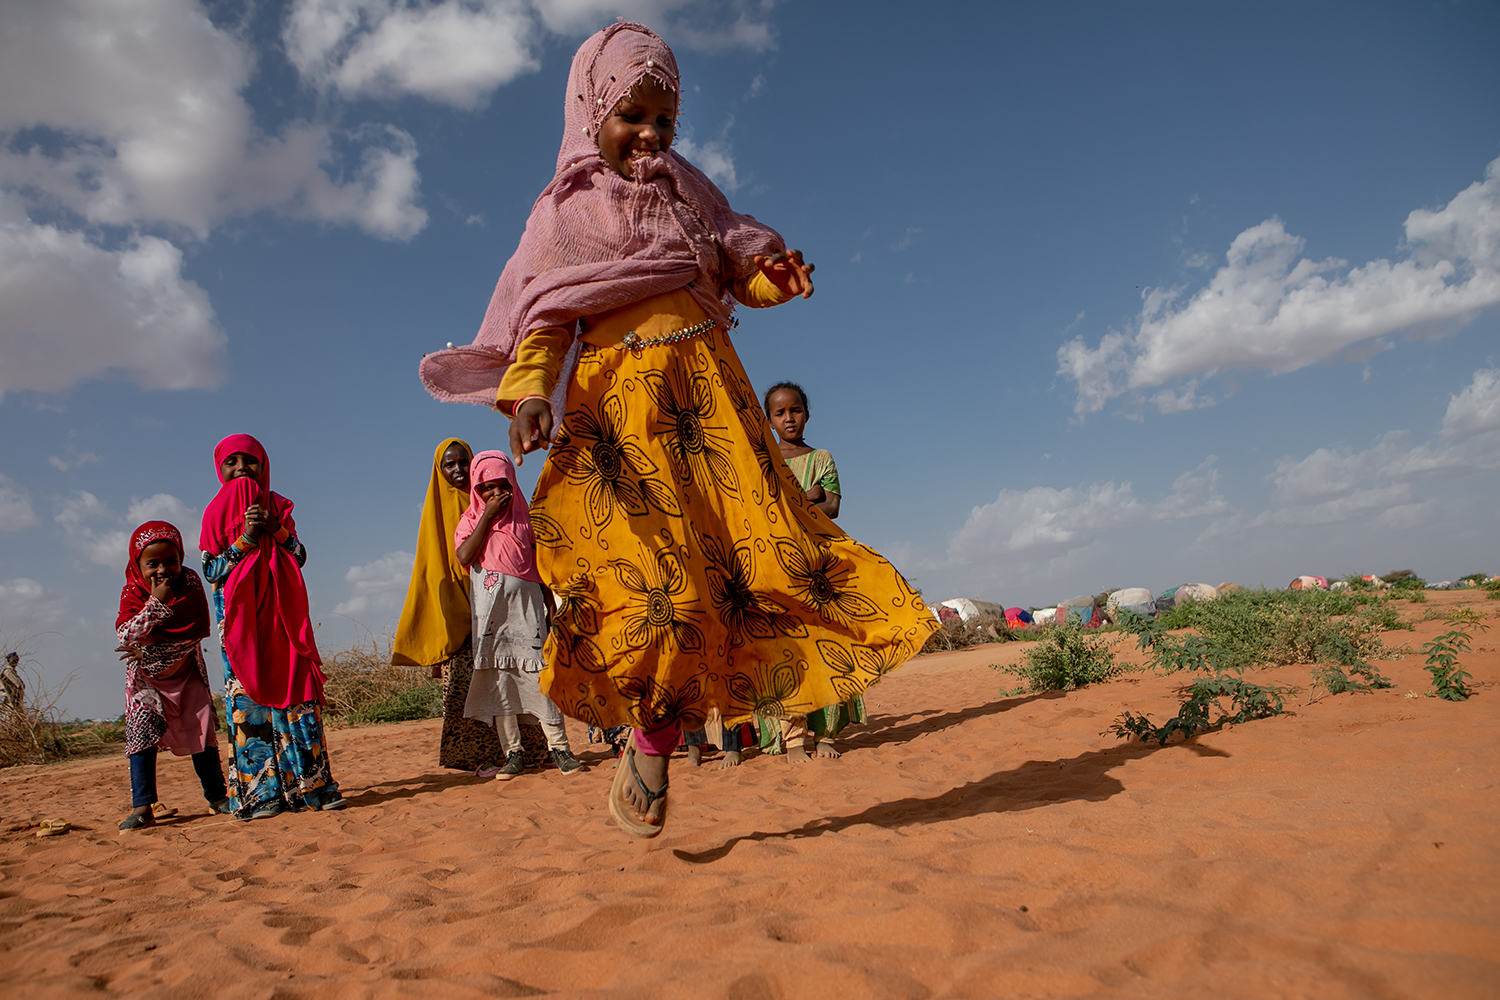 Communities in Somaliland are struggling to recover from a sever